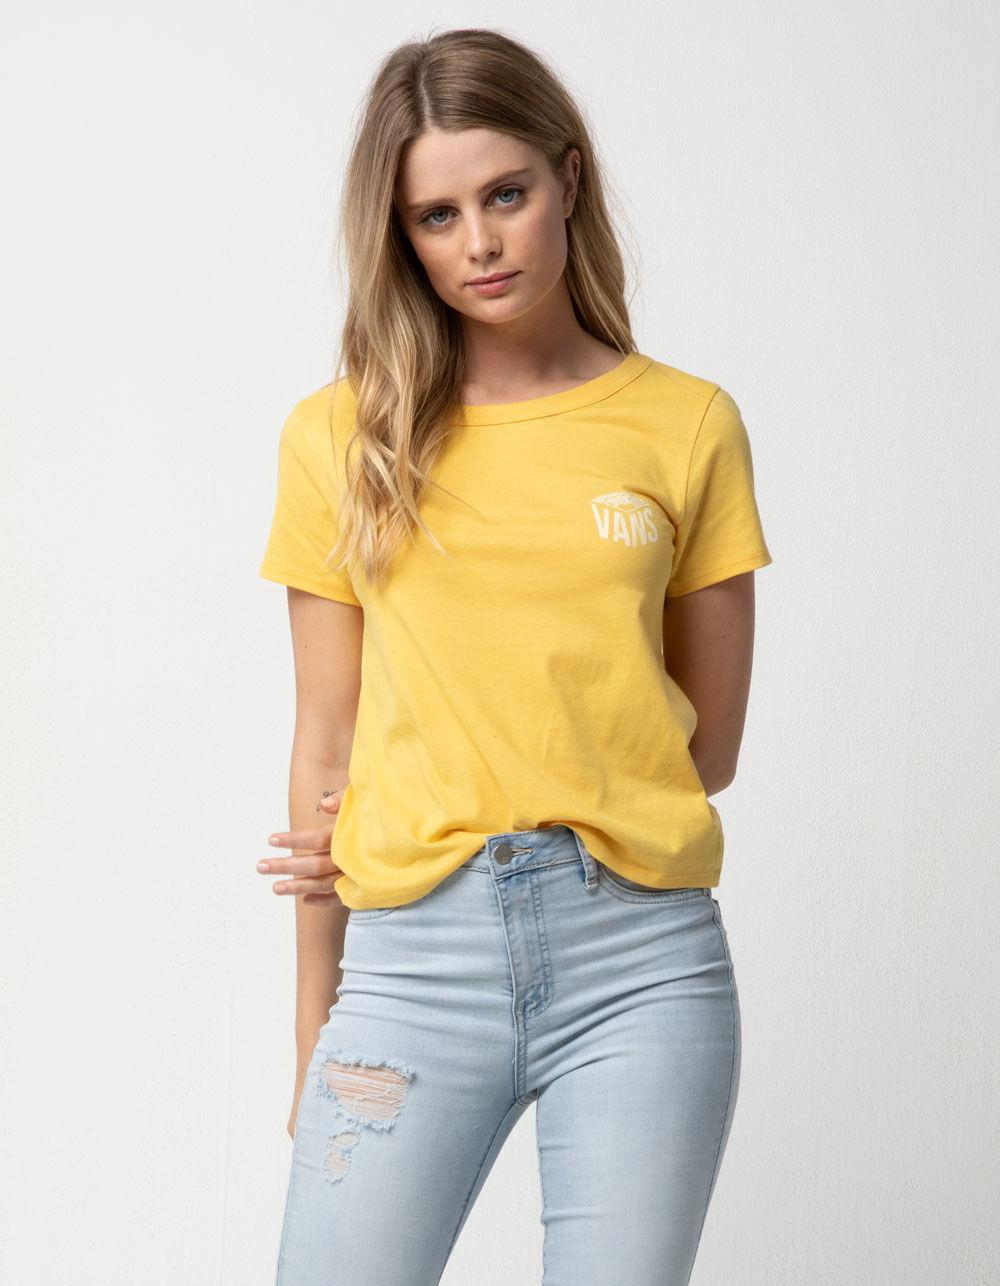 bffdce916e4 Lyst - Vans Skimmer Authentic Womens Tee in Yellow